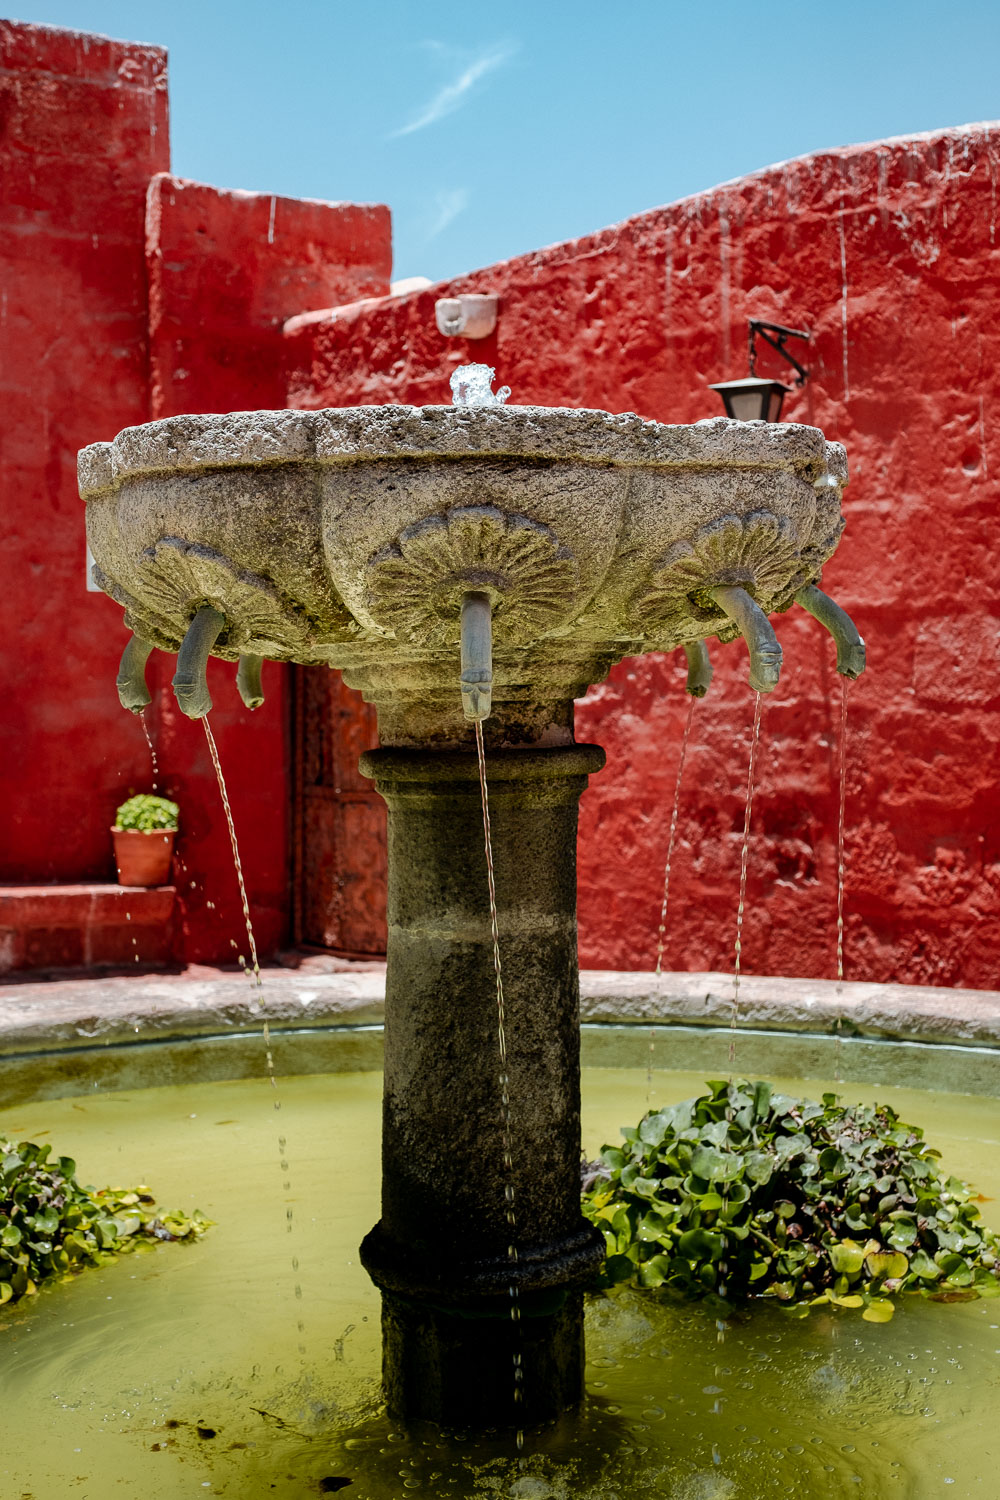 """A fountain in the Santa Catalina Monastery, Arequipa. Travel photography and guide by © Natasha Lequepeys for """"And Then I Met Yoko"""". #peru #photoblog #fujifilm"""